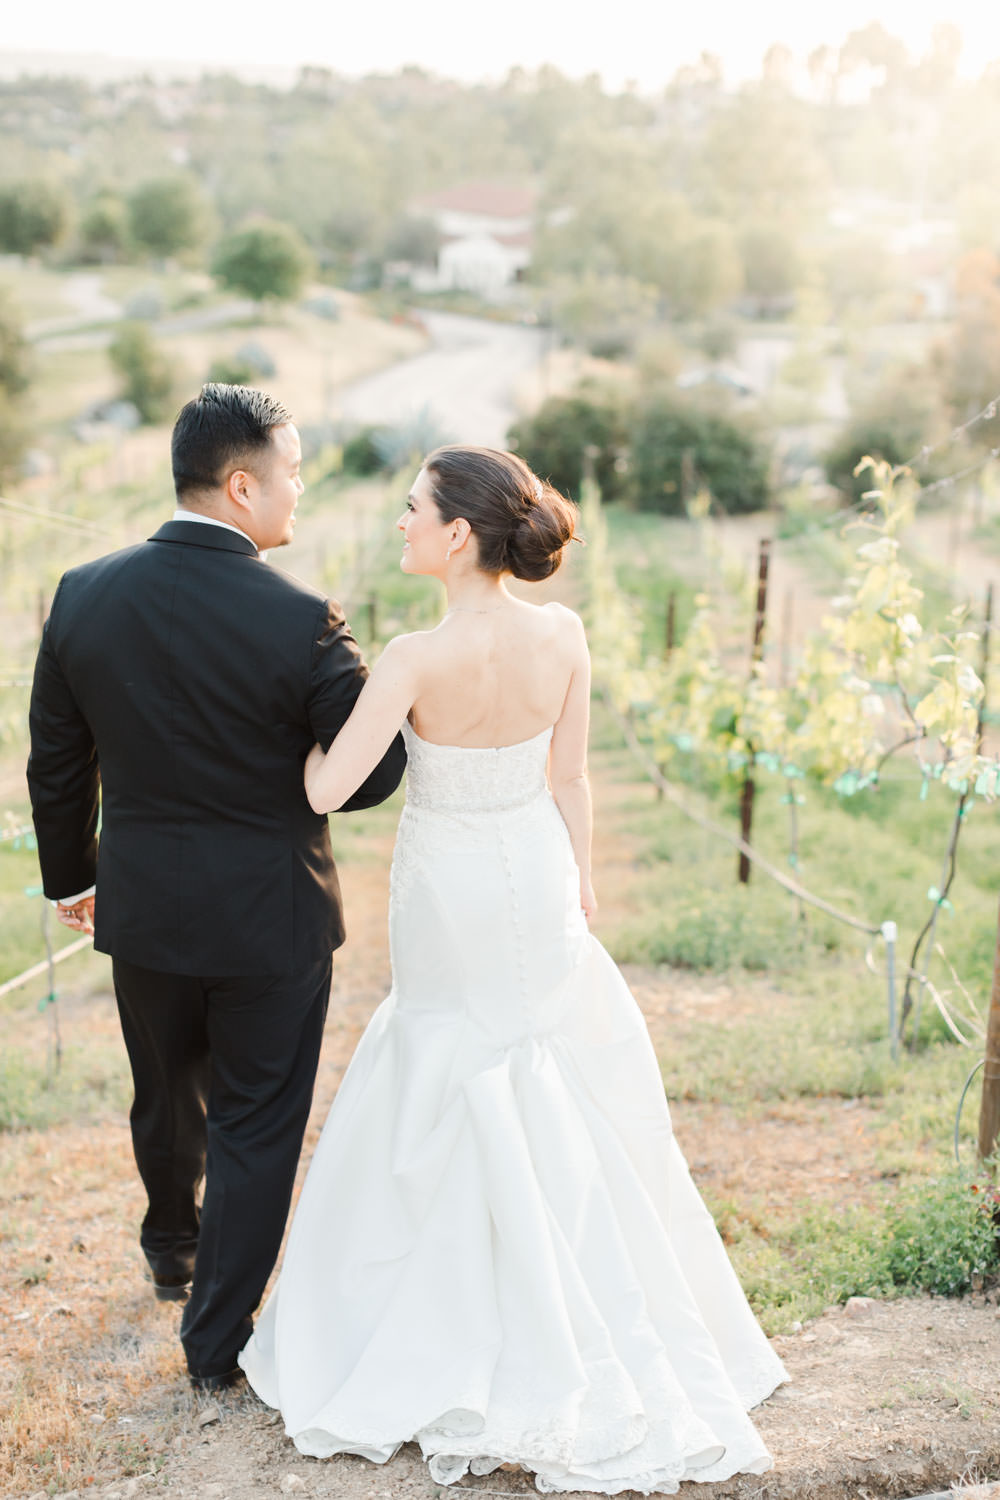 Bride and groom walking in the vineyards, Santalux Club wedding reception, Cavin Elizabeth Photography